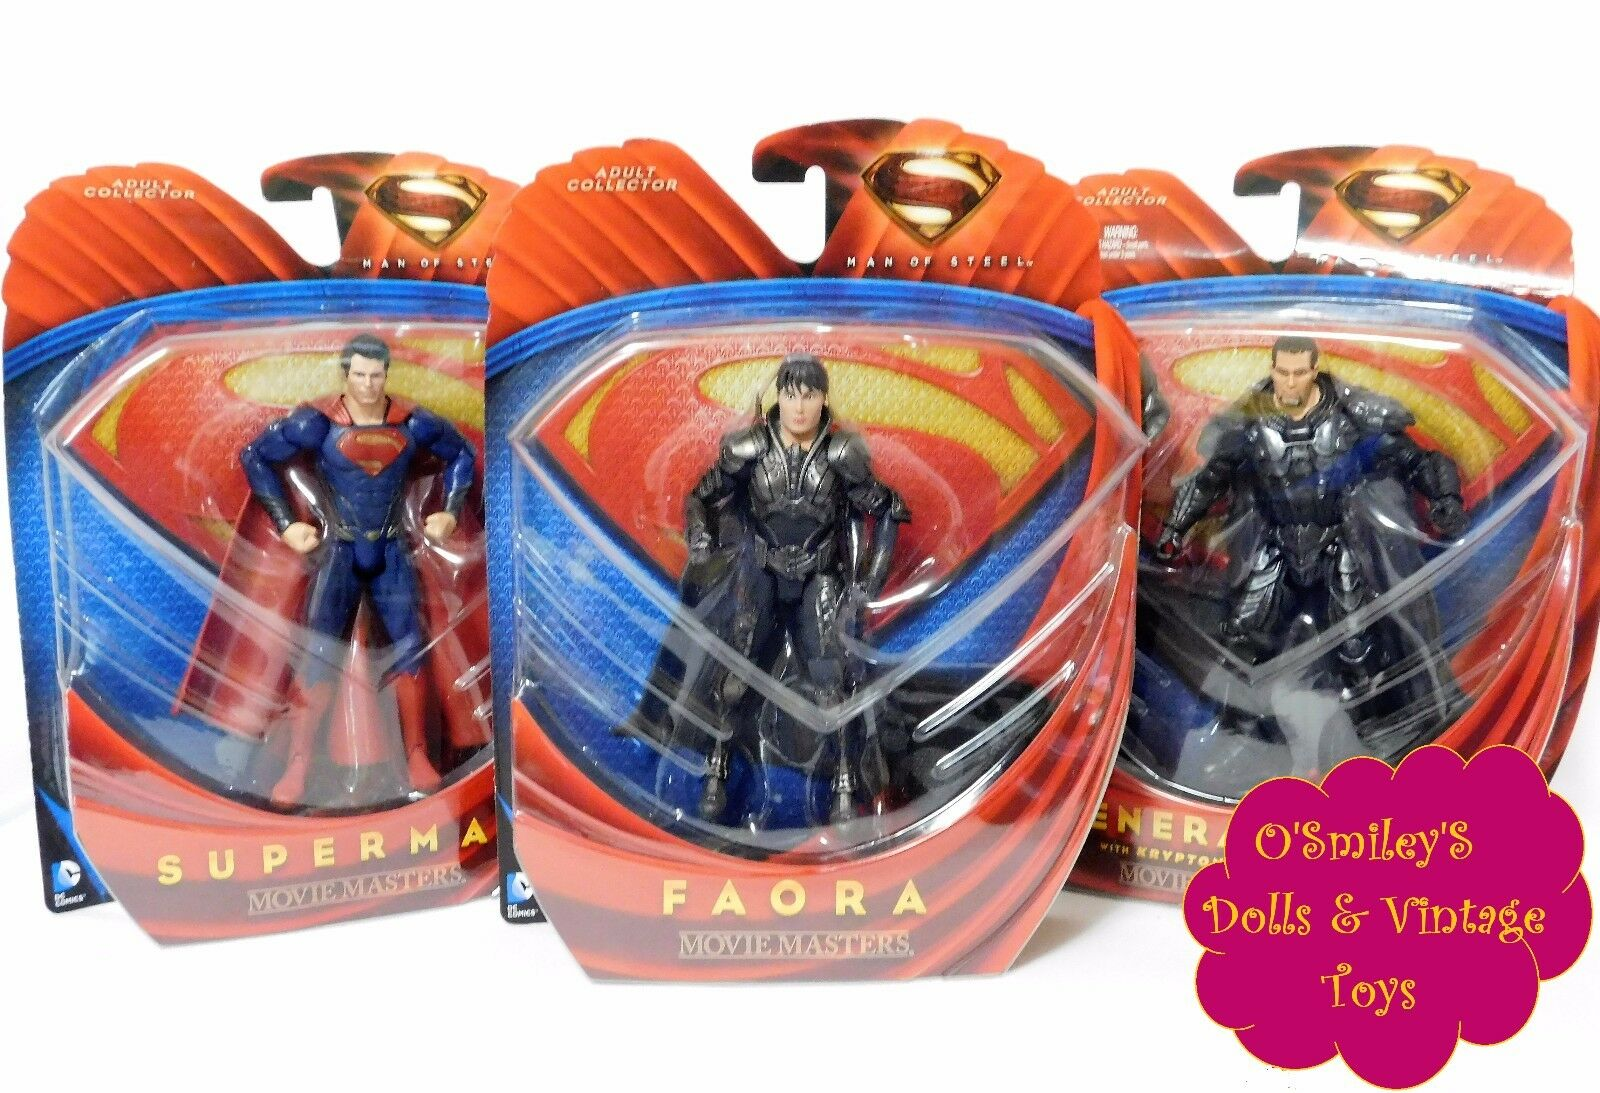 MAN OF STEEL SUPERMAN U FIORA U GENERAL ZOD 2013 Movie Masters Mattel Set of 3 u MOC